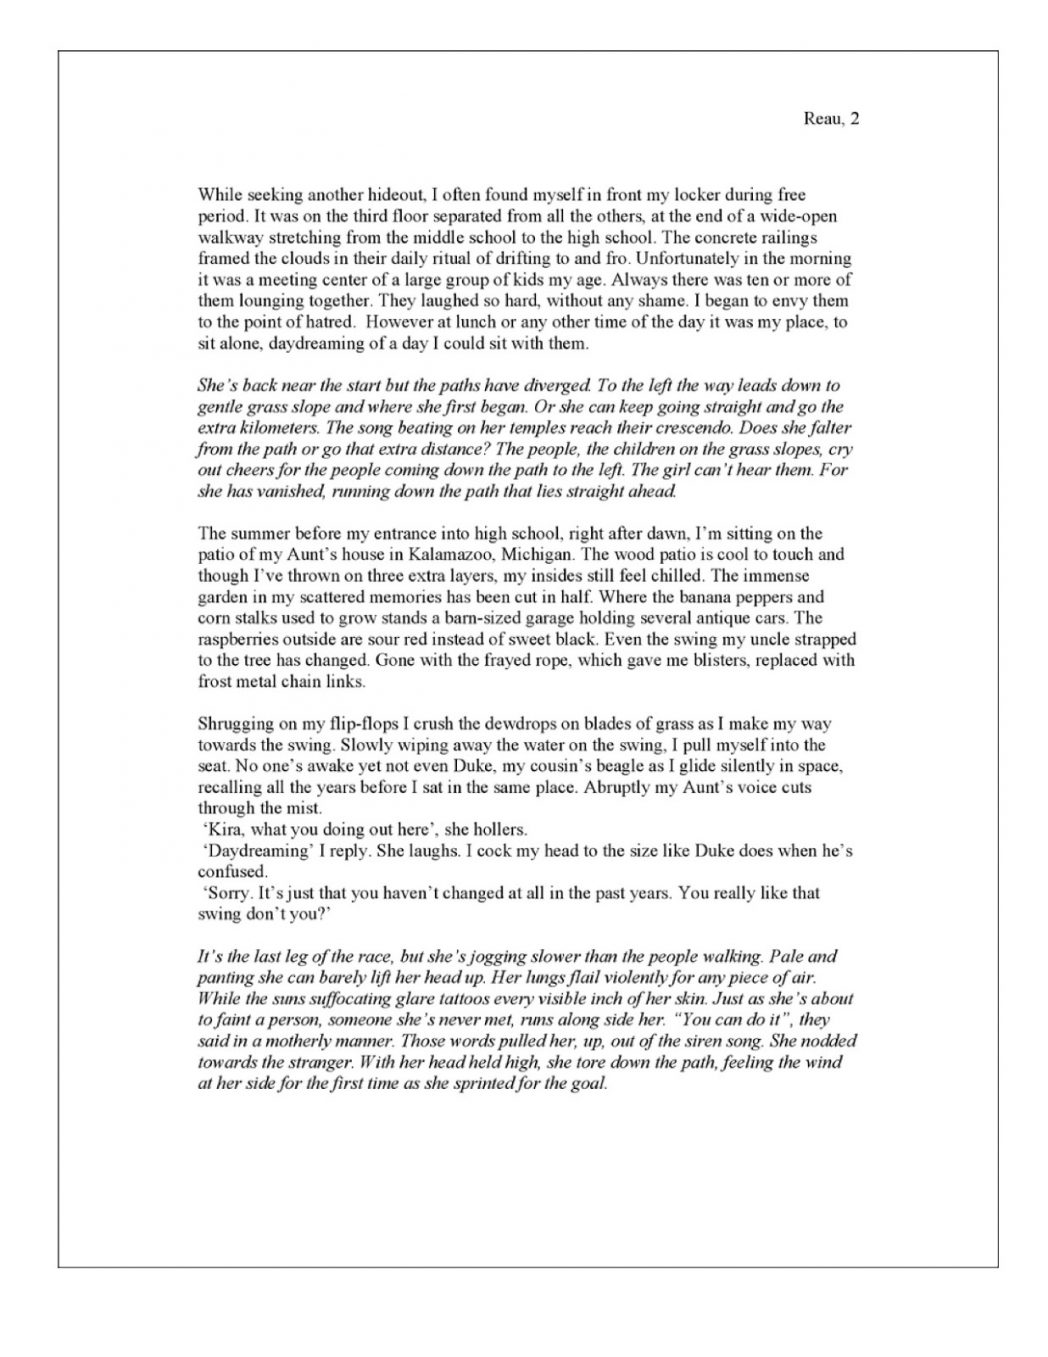 018 Narration Essay Define Narrative Definition Of The Life A Misant How To Write My Help Me 1048x1357 Fascinating Writing Personal Narrative/descriptive Full